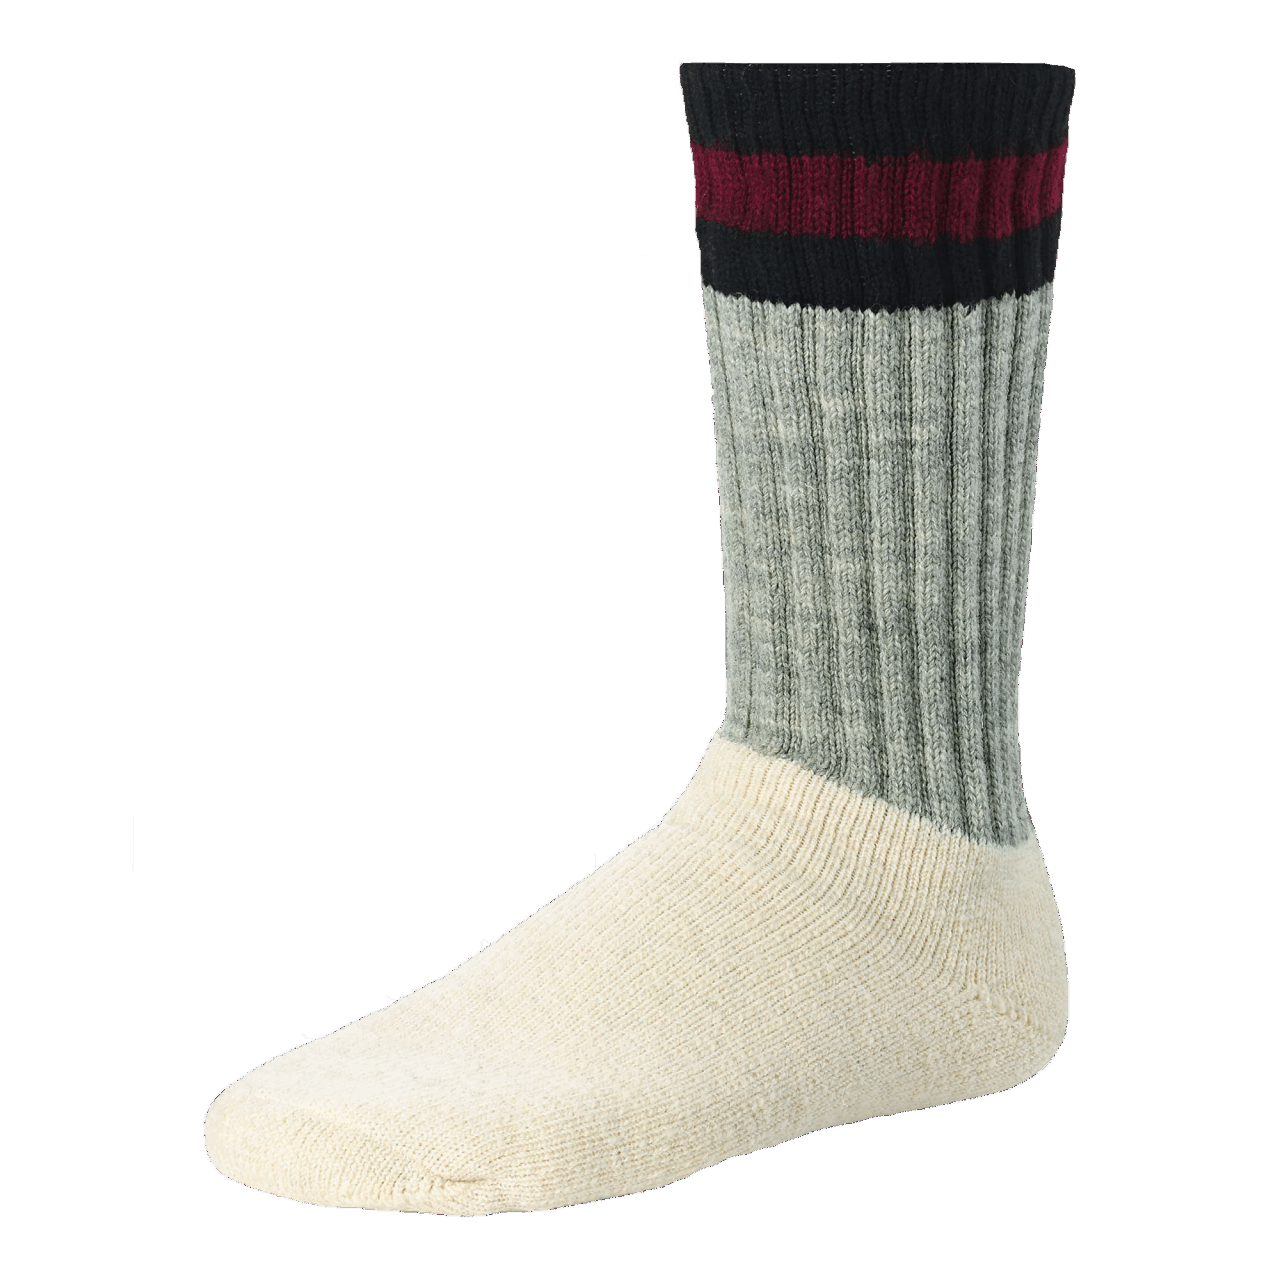 Red Wing Arctic Sock - white / gray - black / red stripe